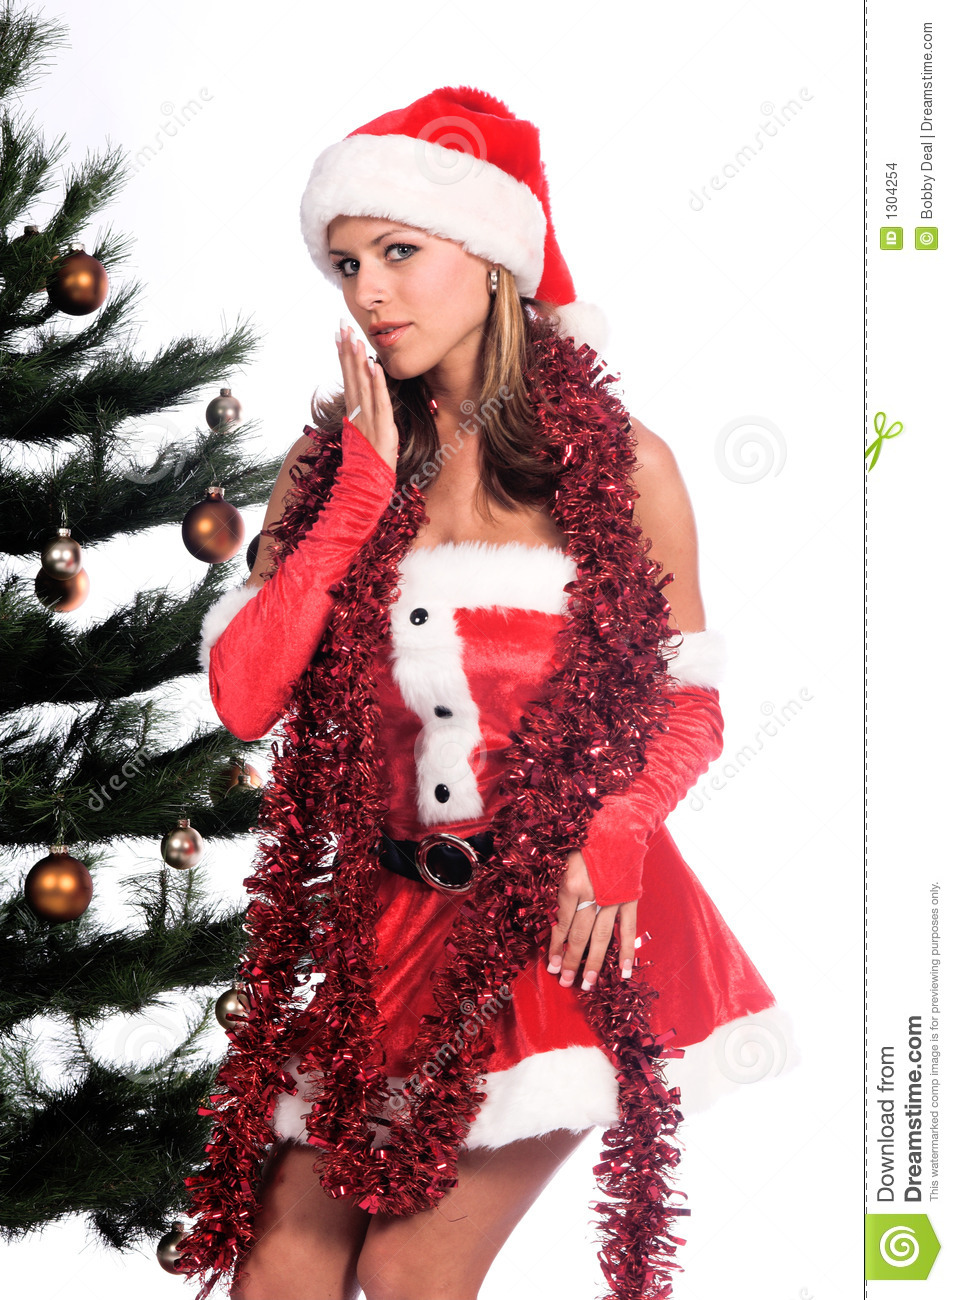 Merry christmas sexy santa helpers apologise, but